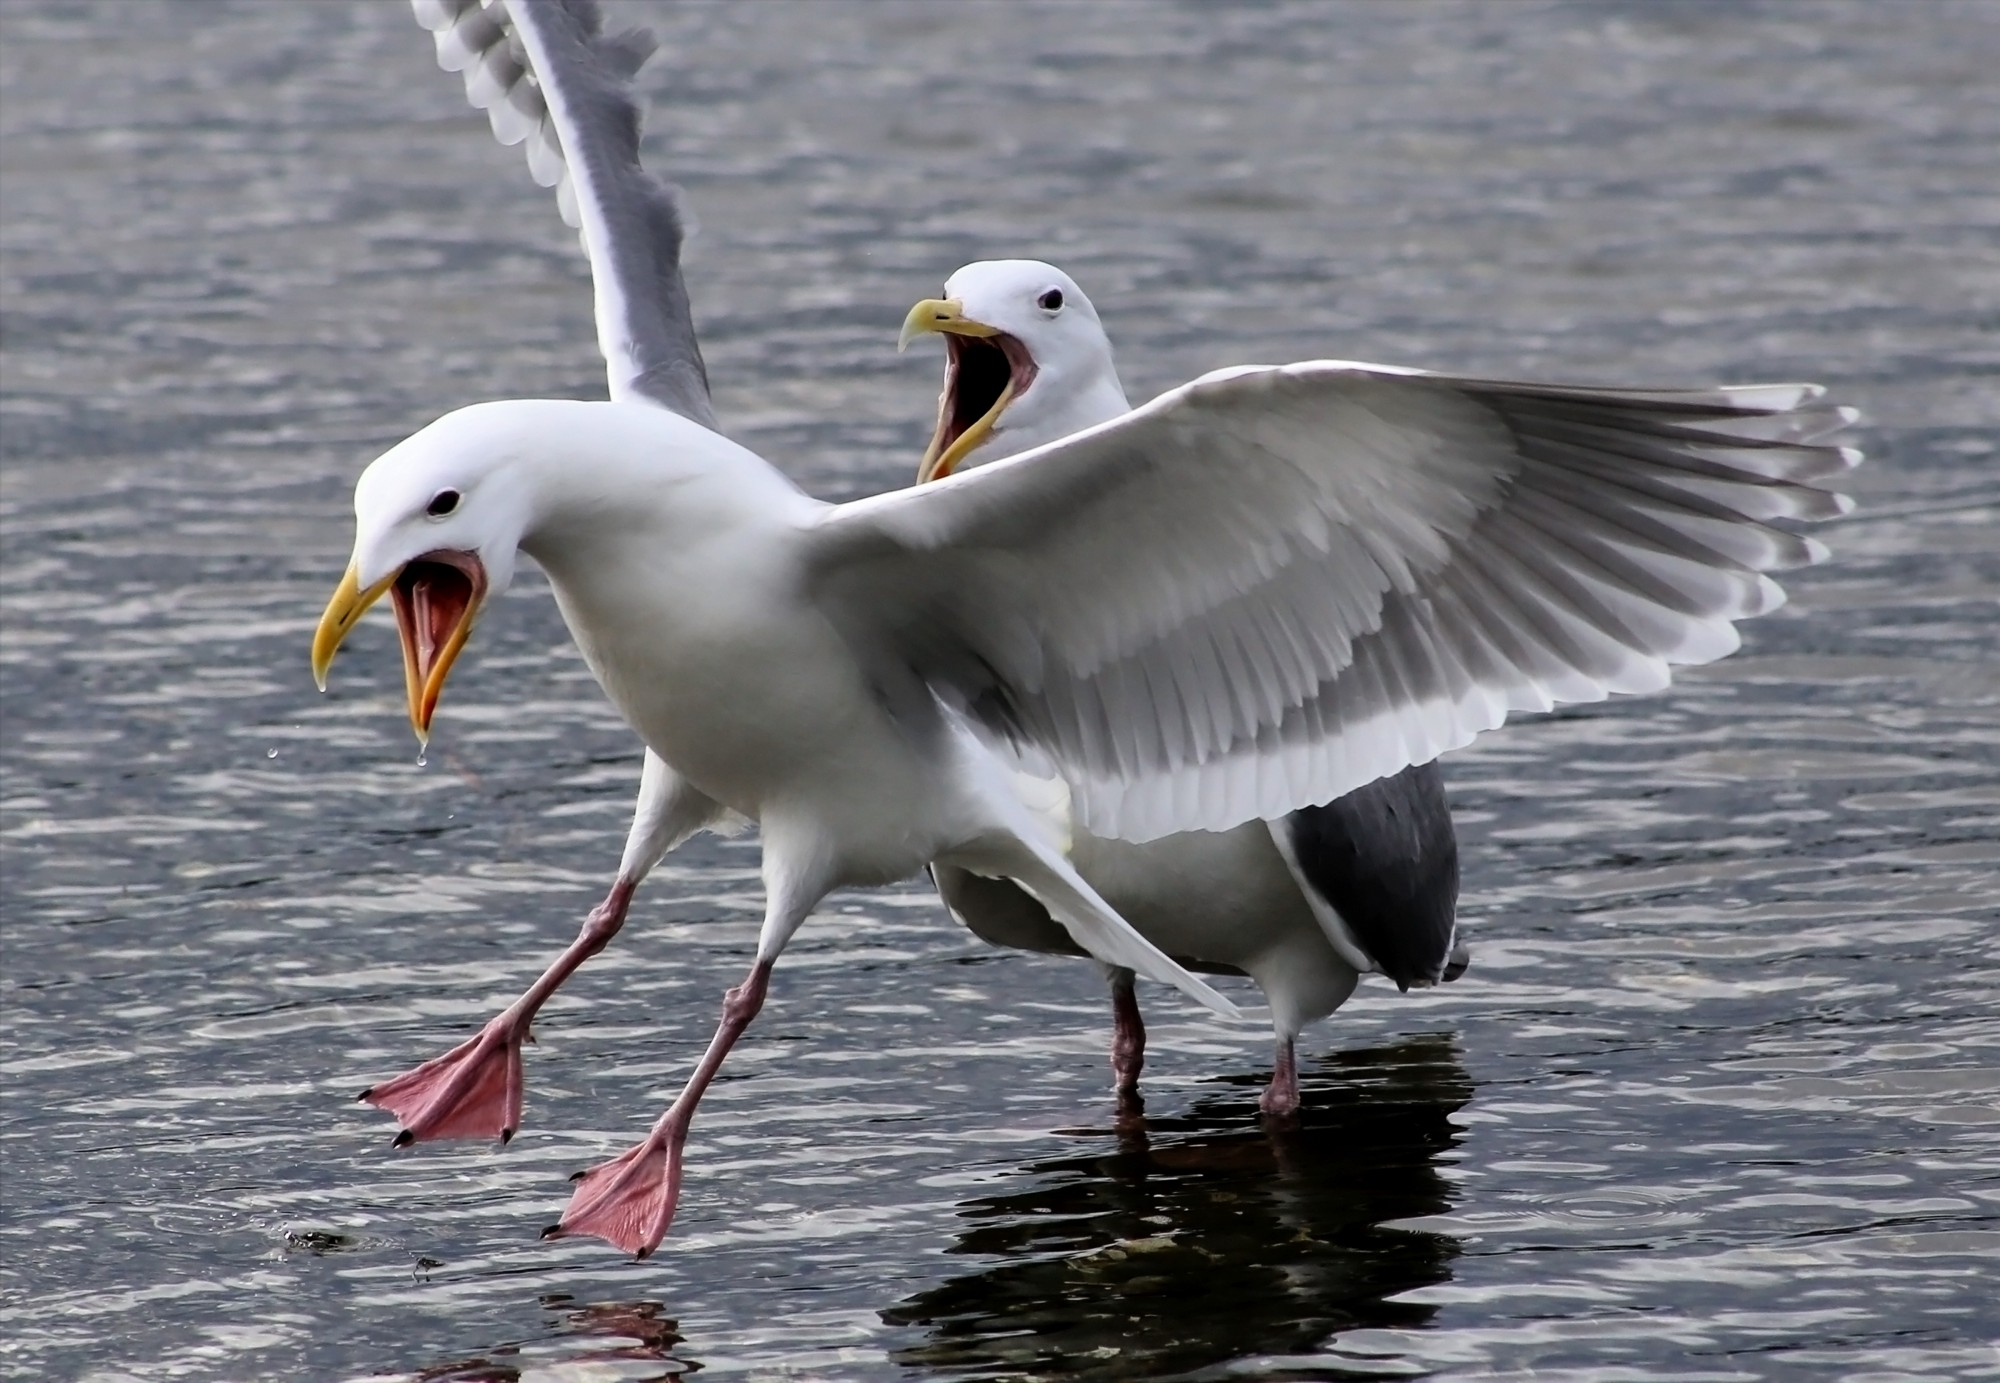 Two seagulls calling